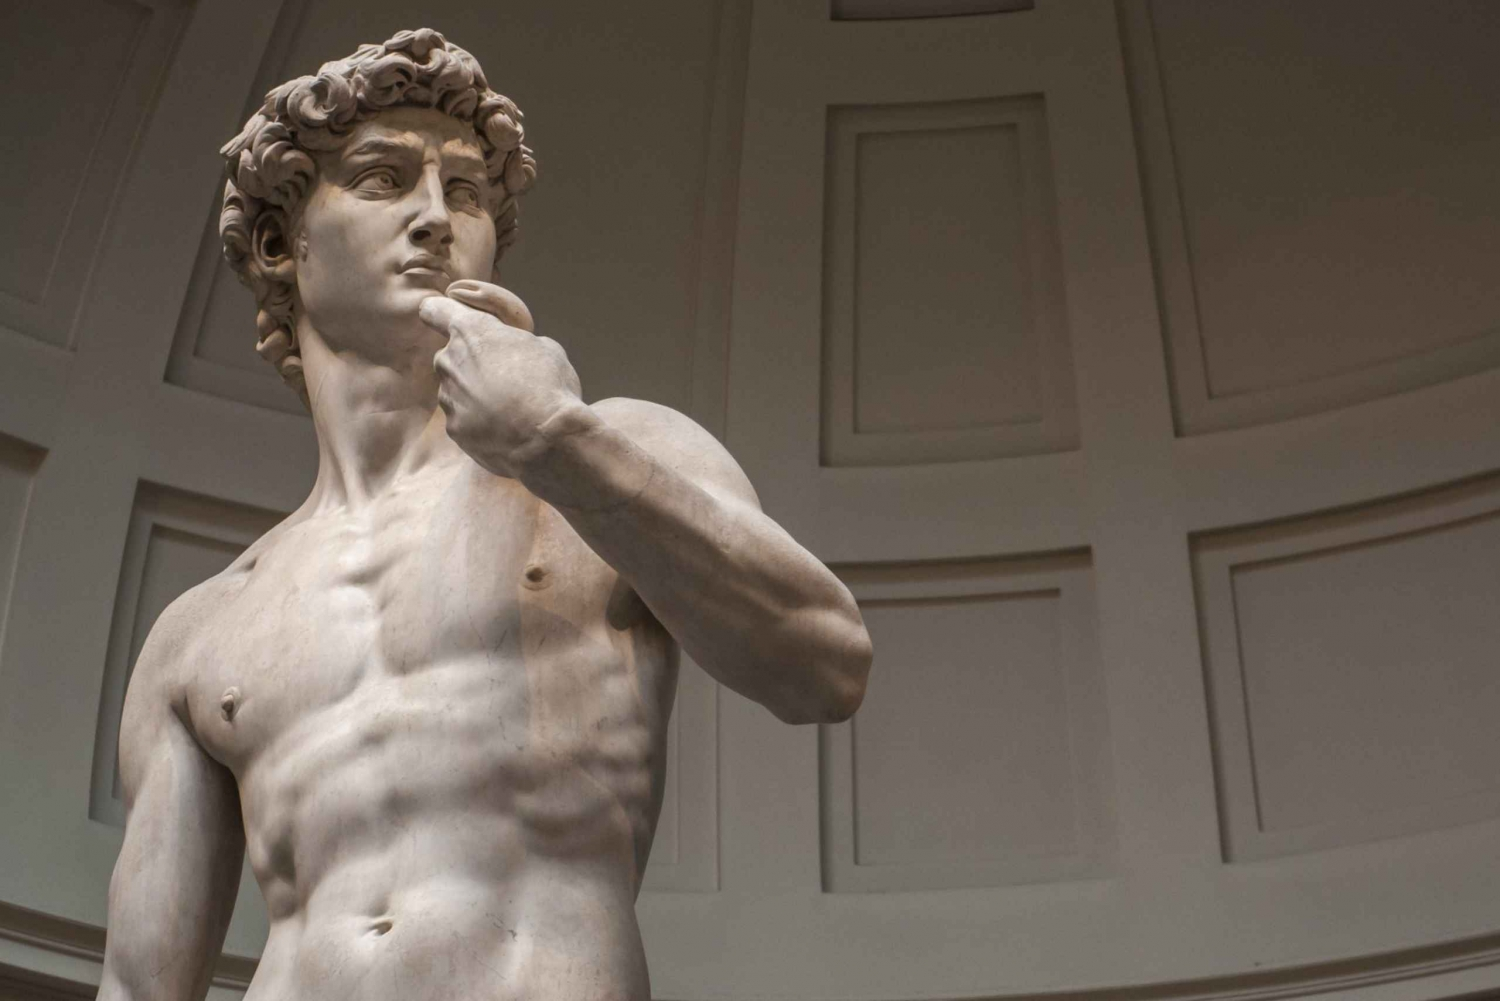 Skip the Line Walking Tour: Michelangelo's David, Florence